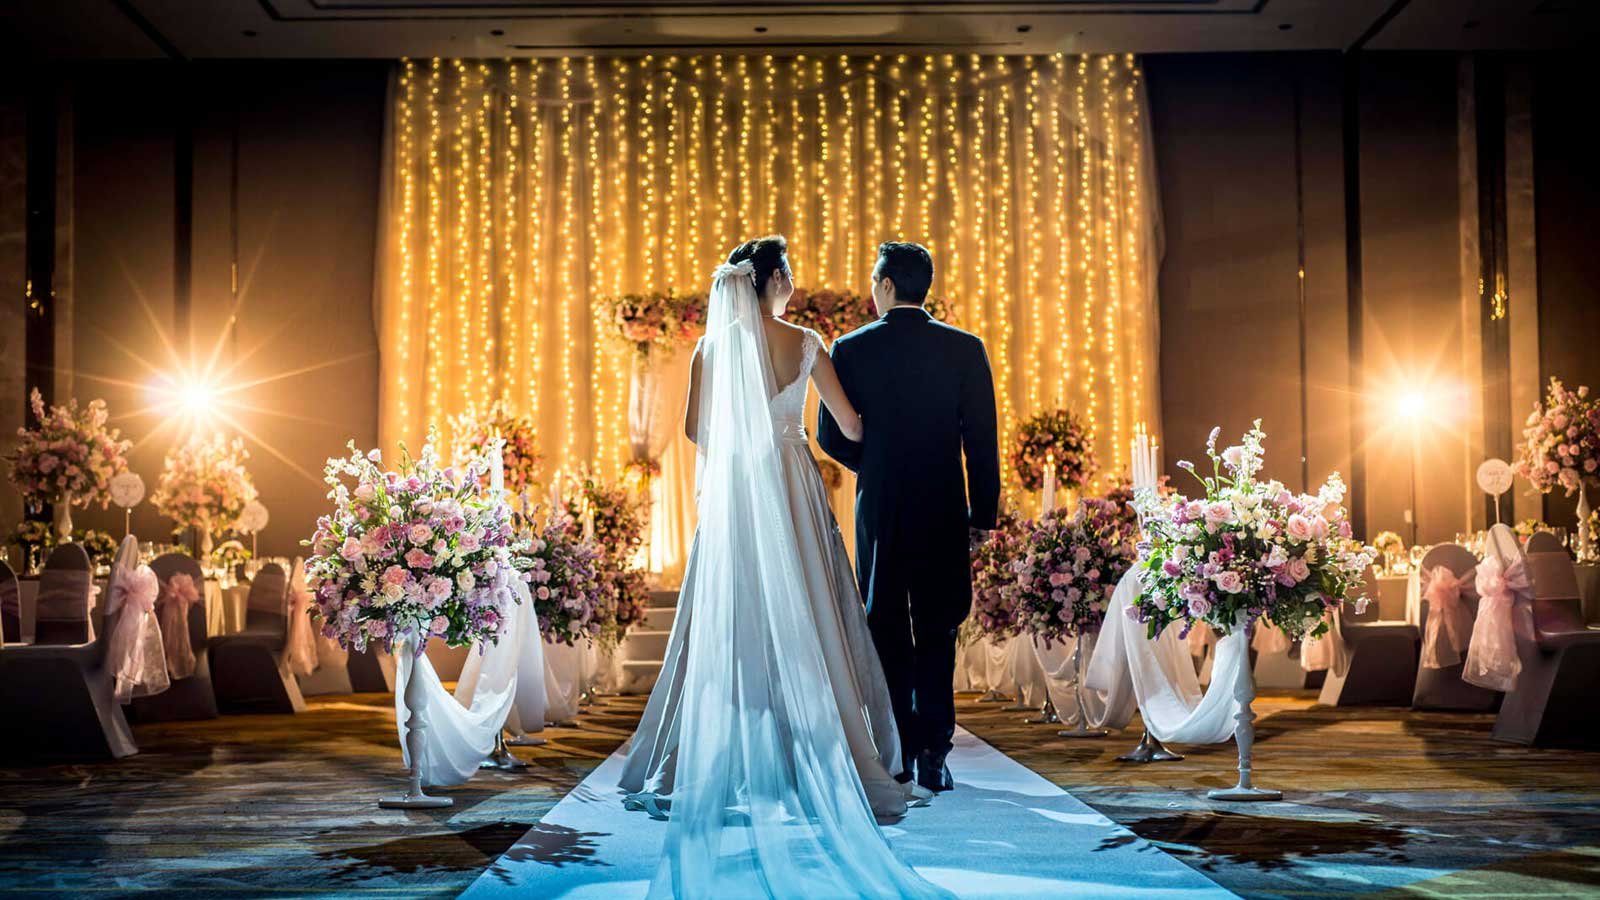 """""""The Journey of Love"""" Wedding Package - {C1690156-7EFE-4B93-9900-54D9B5145564}"""